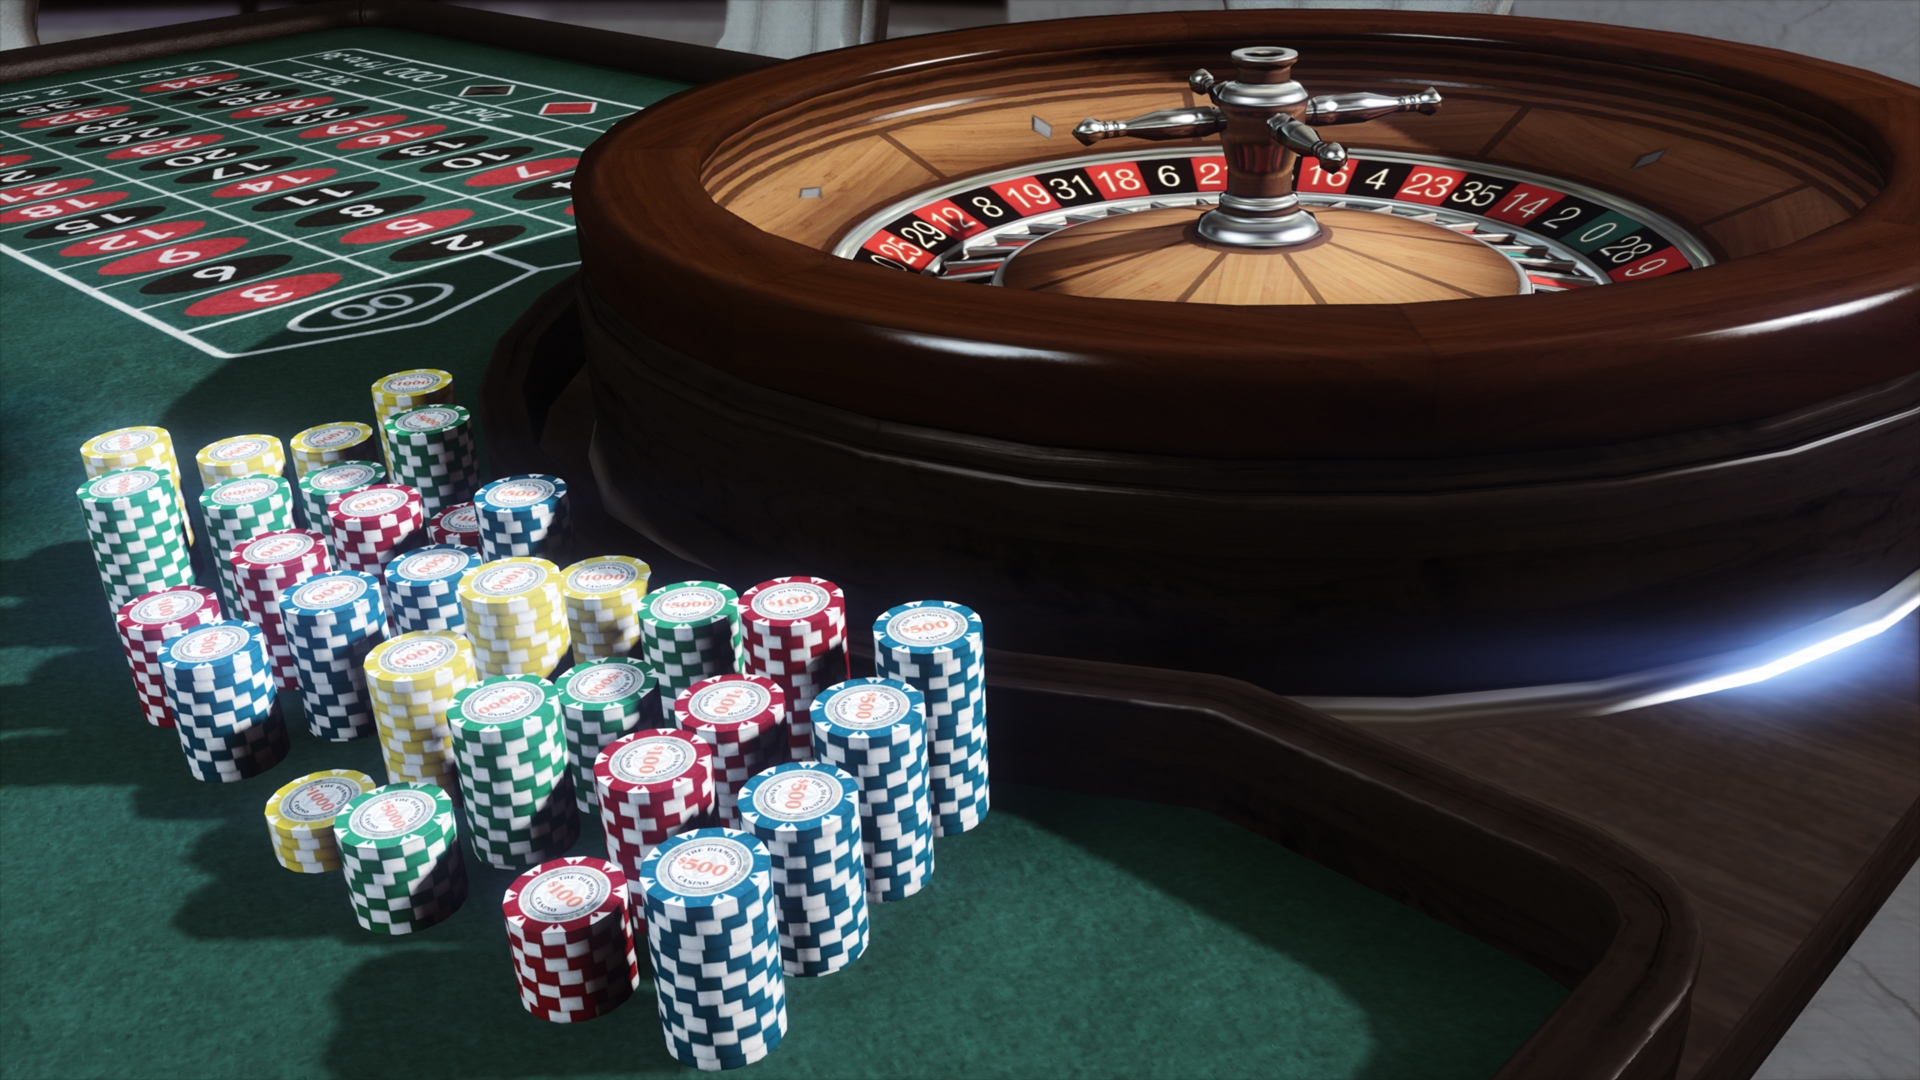 The rise of blackjac best online casino site for players